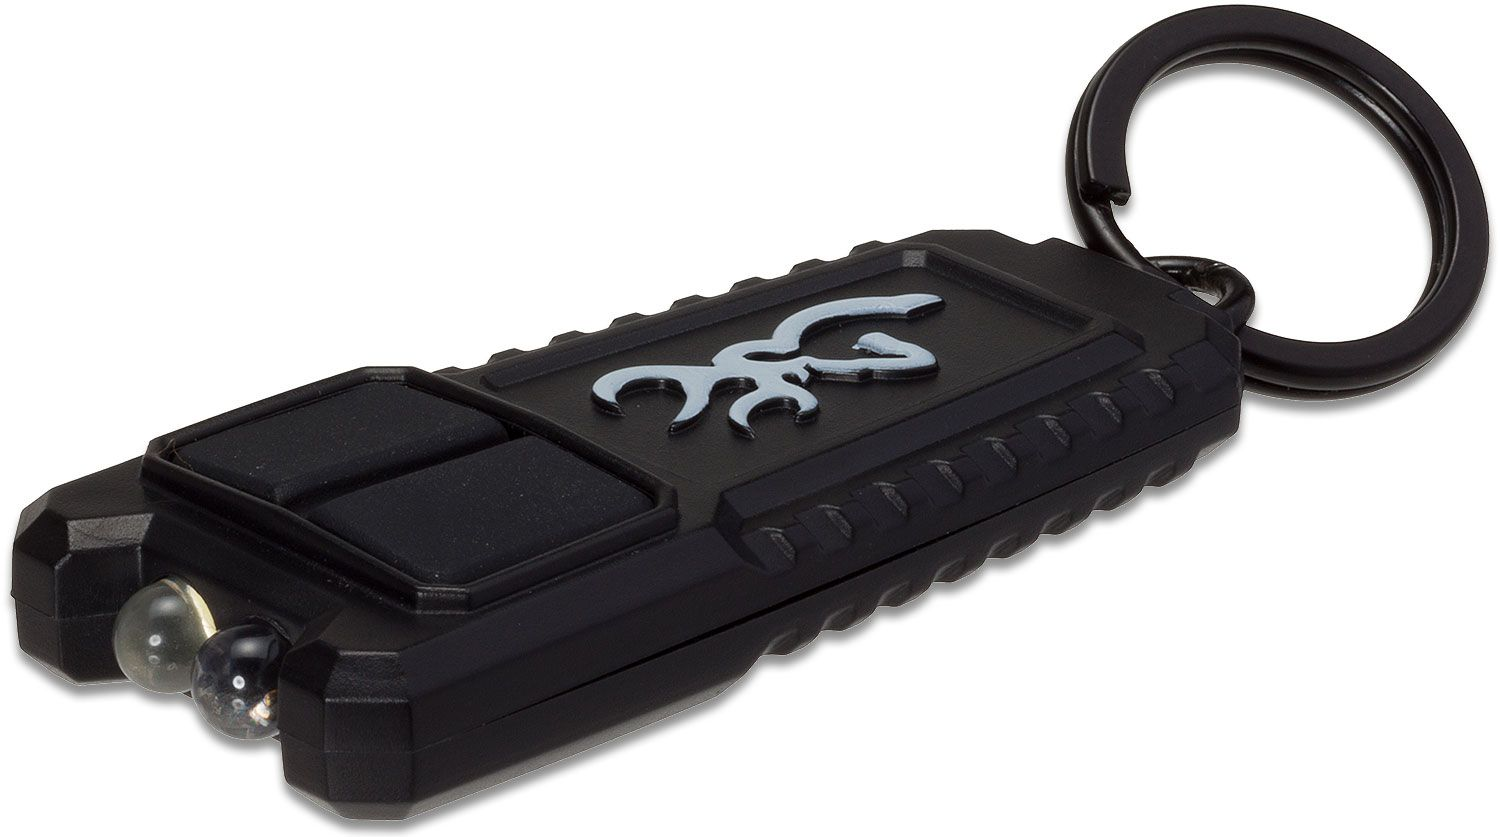 Browning Flash USB Rechargeable Keychain Light, 35 Max Lumens